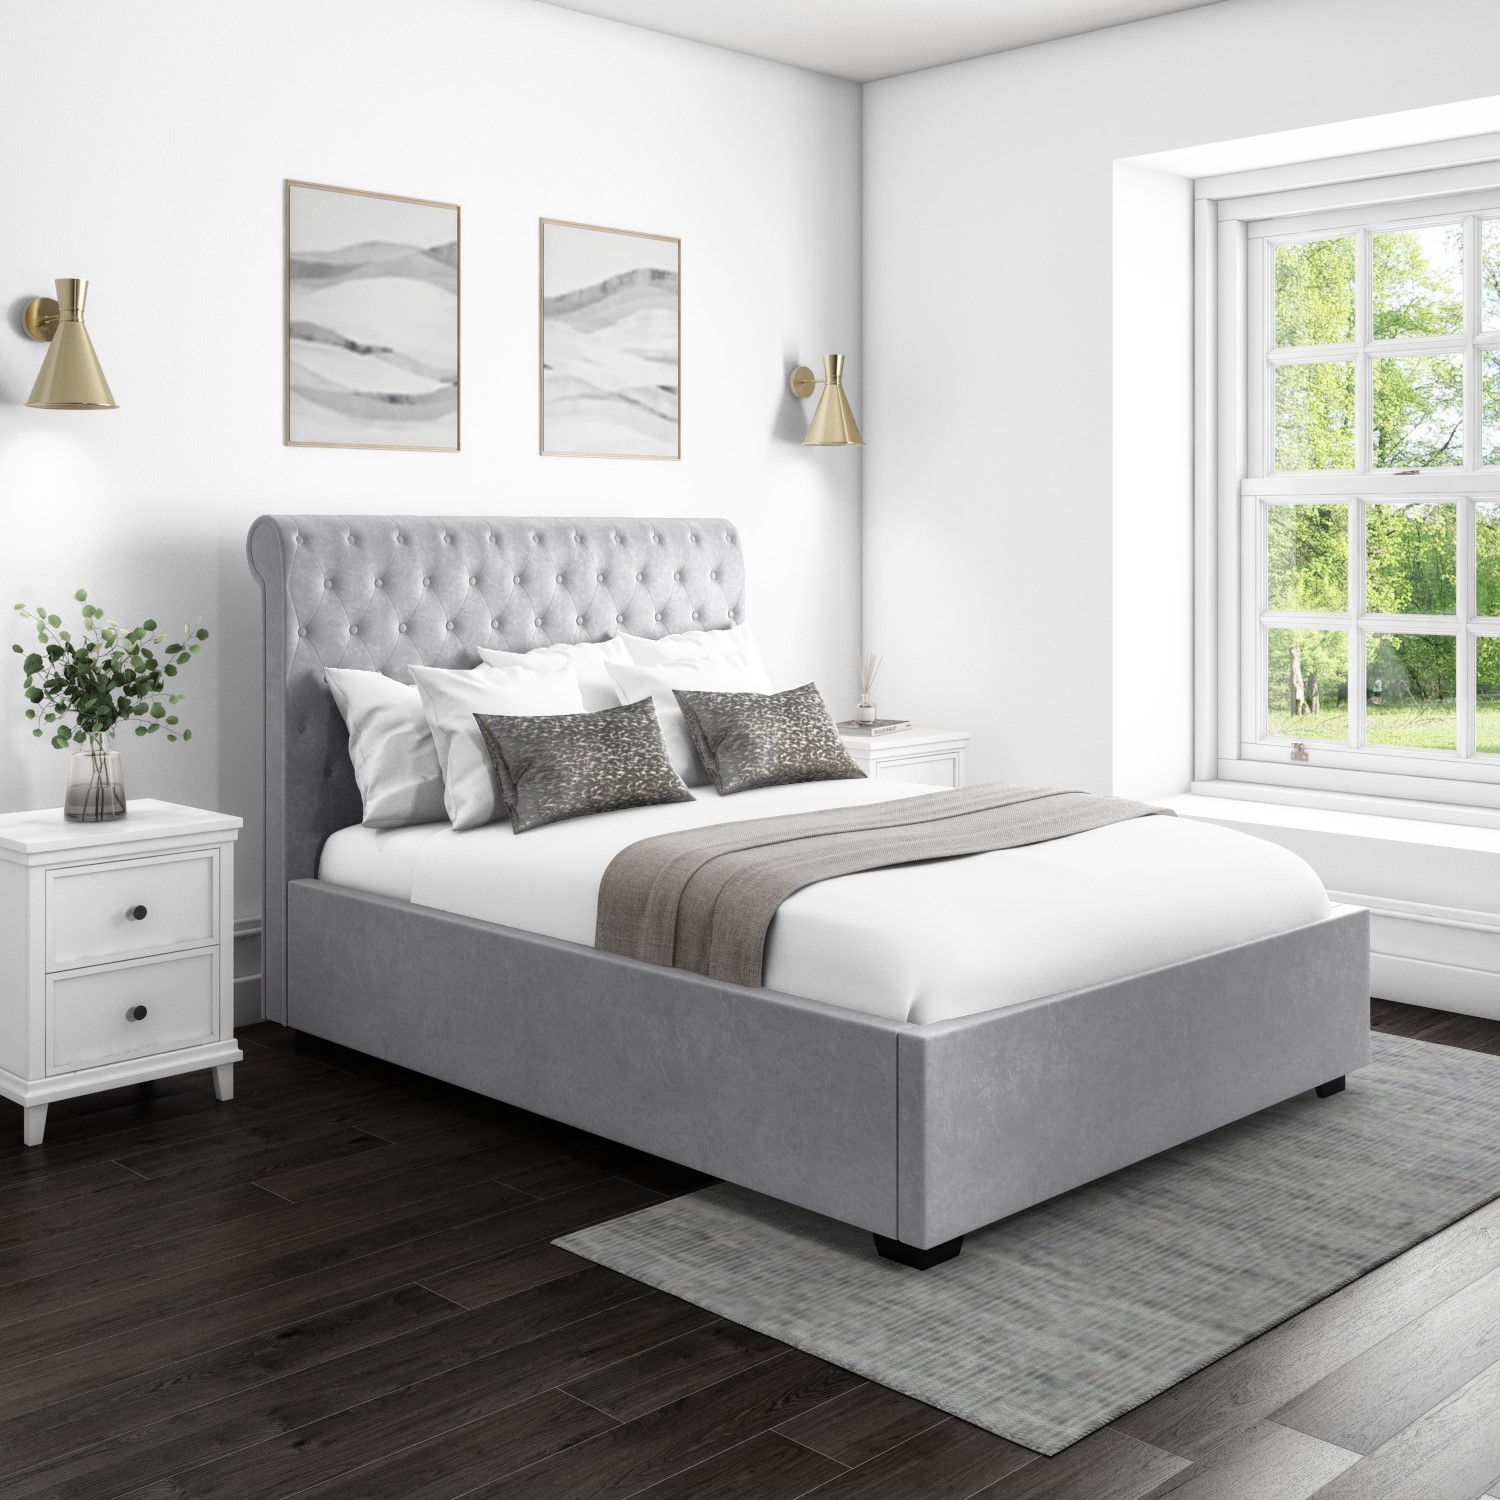 Picture of: Safina Rolltop King Size Ottoman Bed In Silver Grey Velvet Ebay